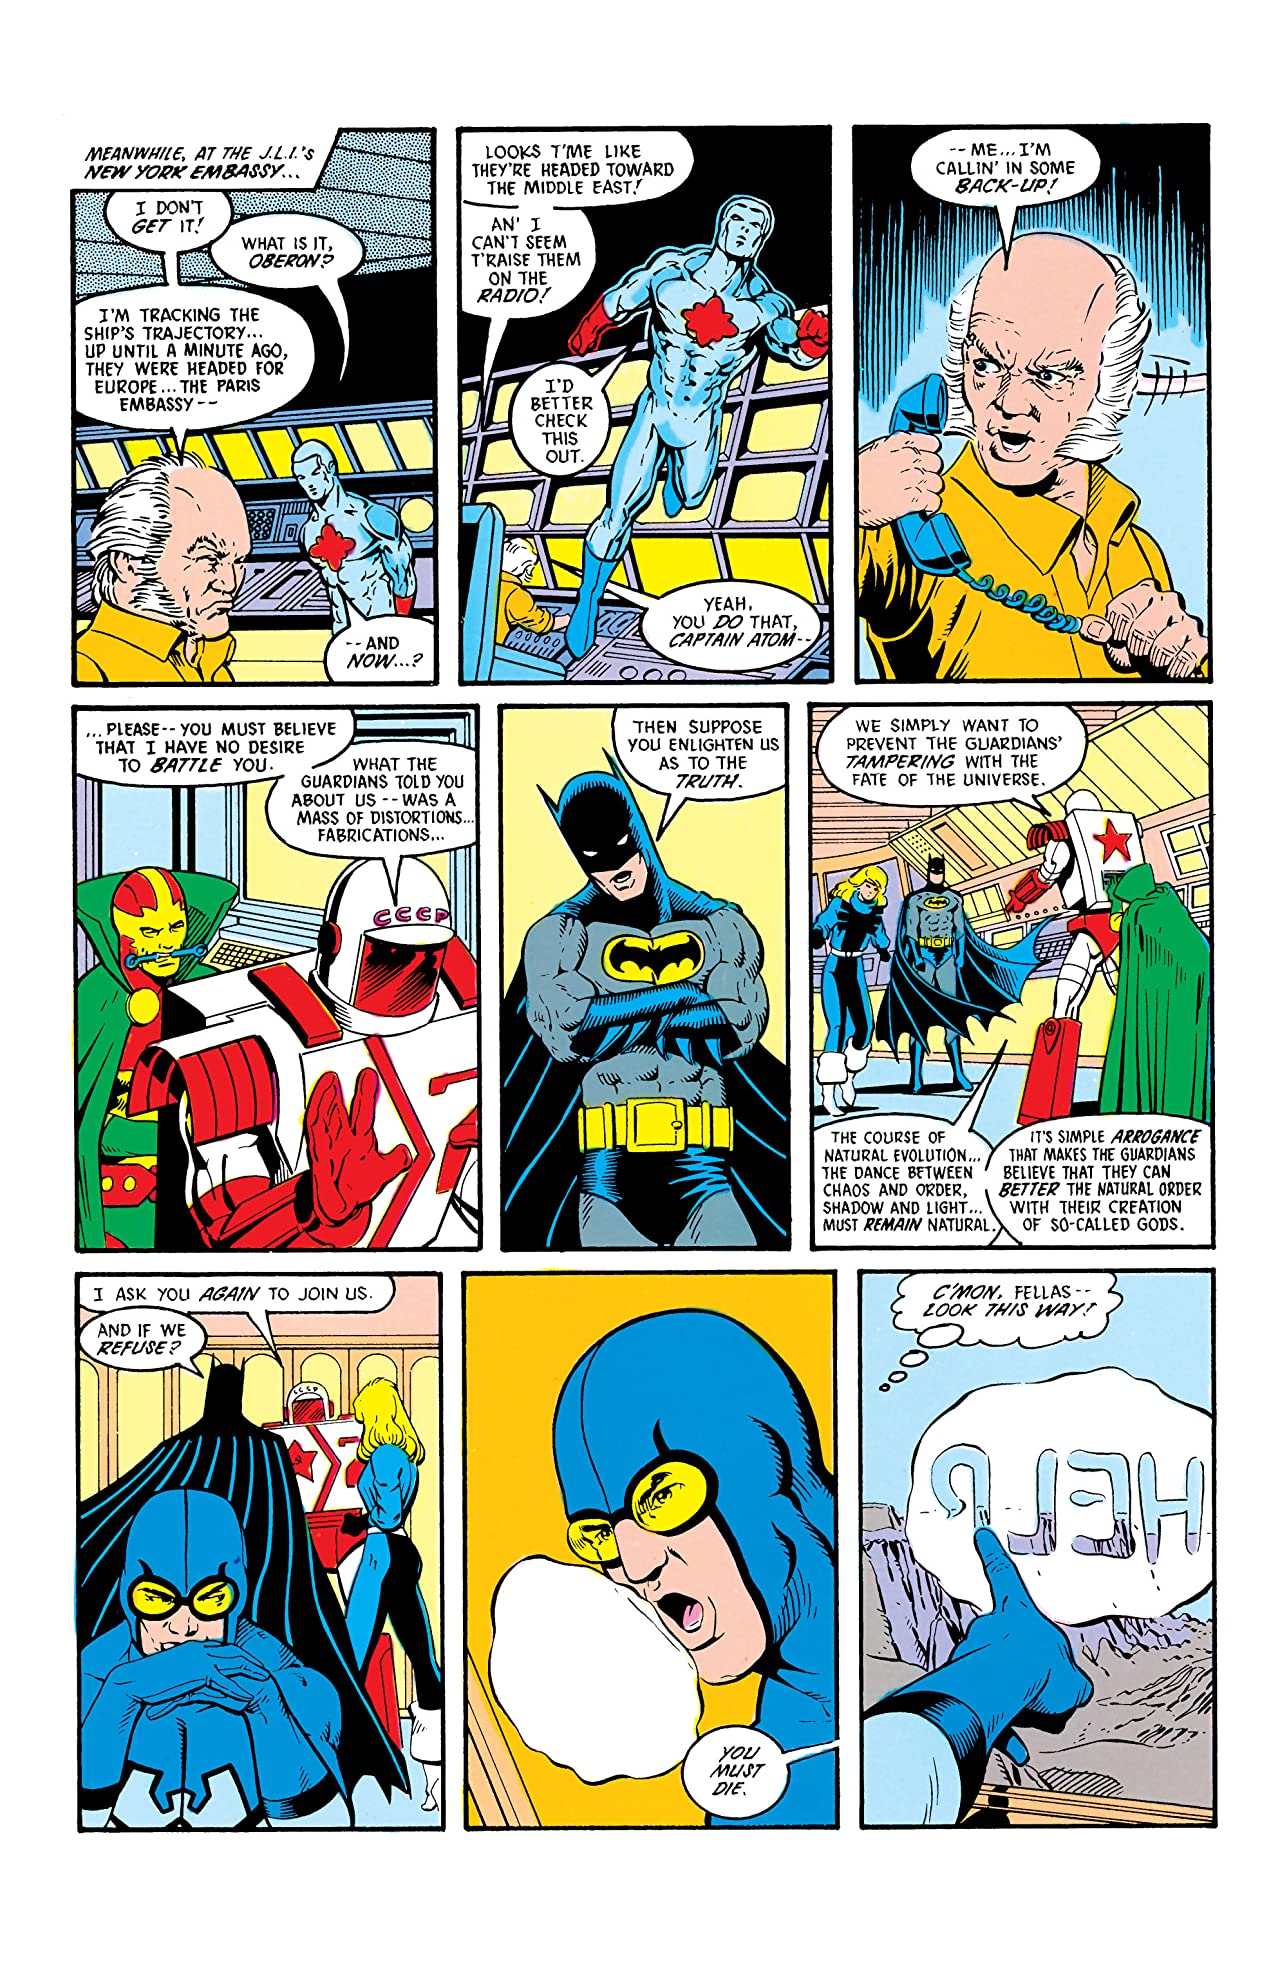 Justice League International (1987-1989) #9